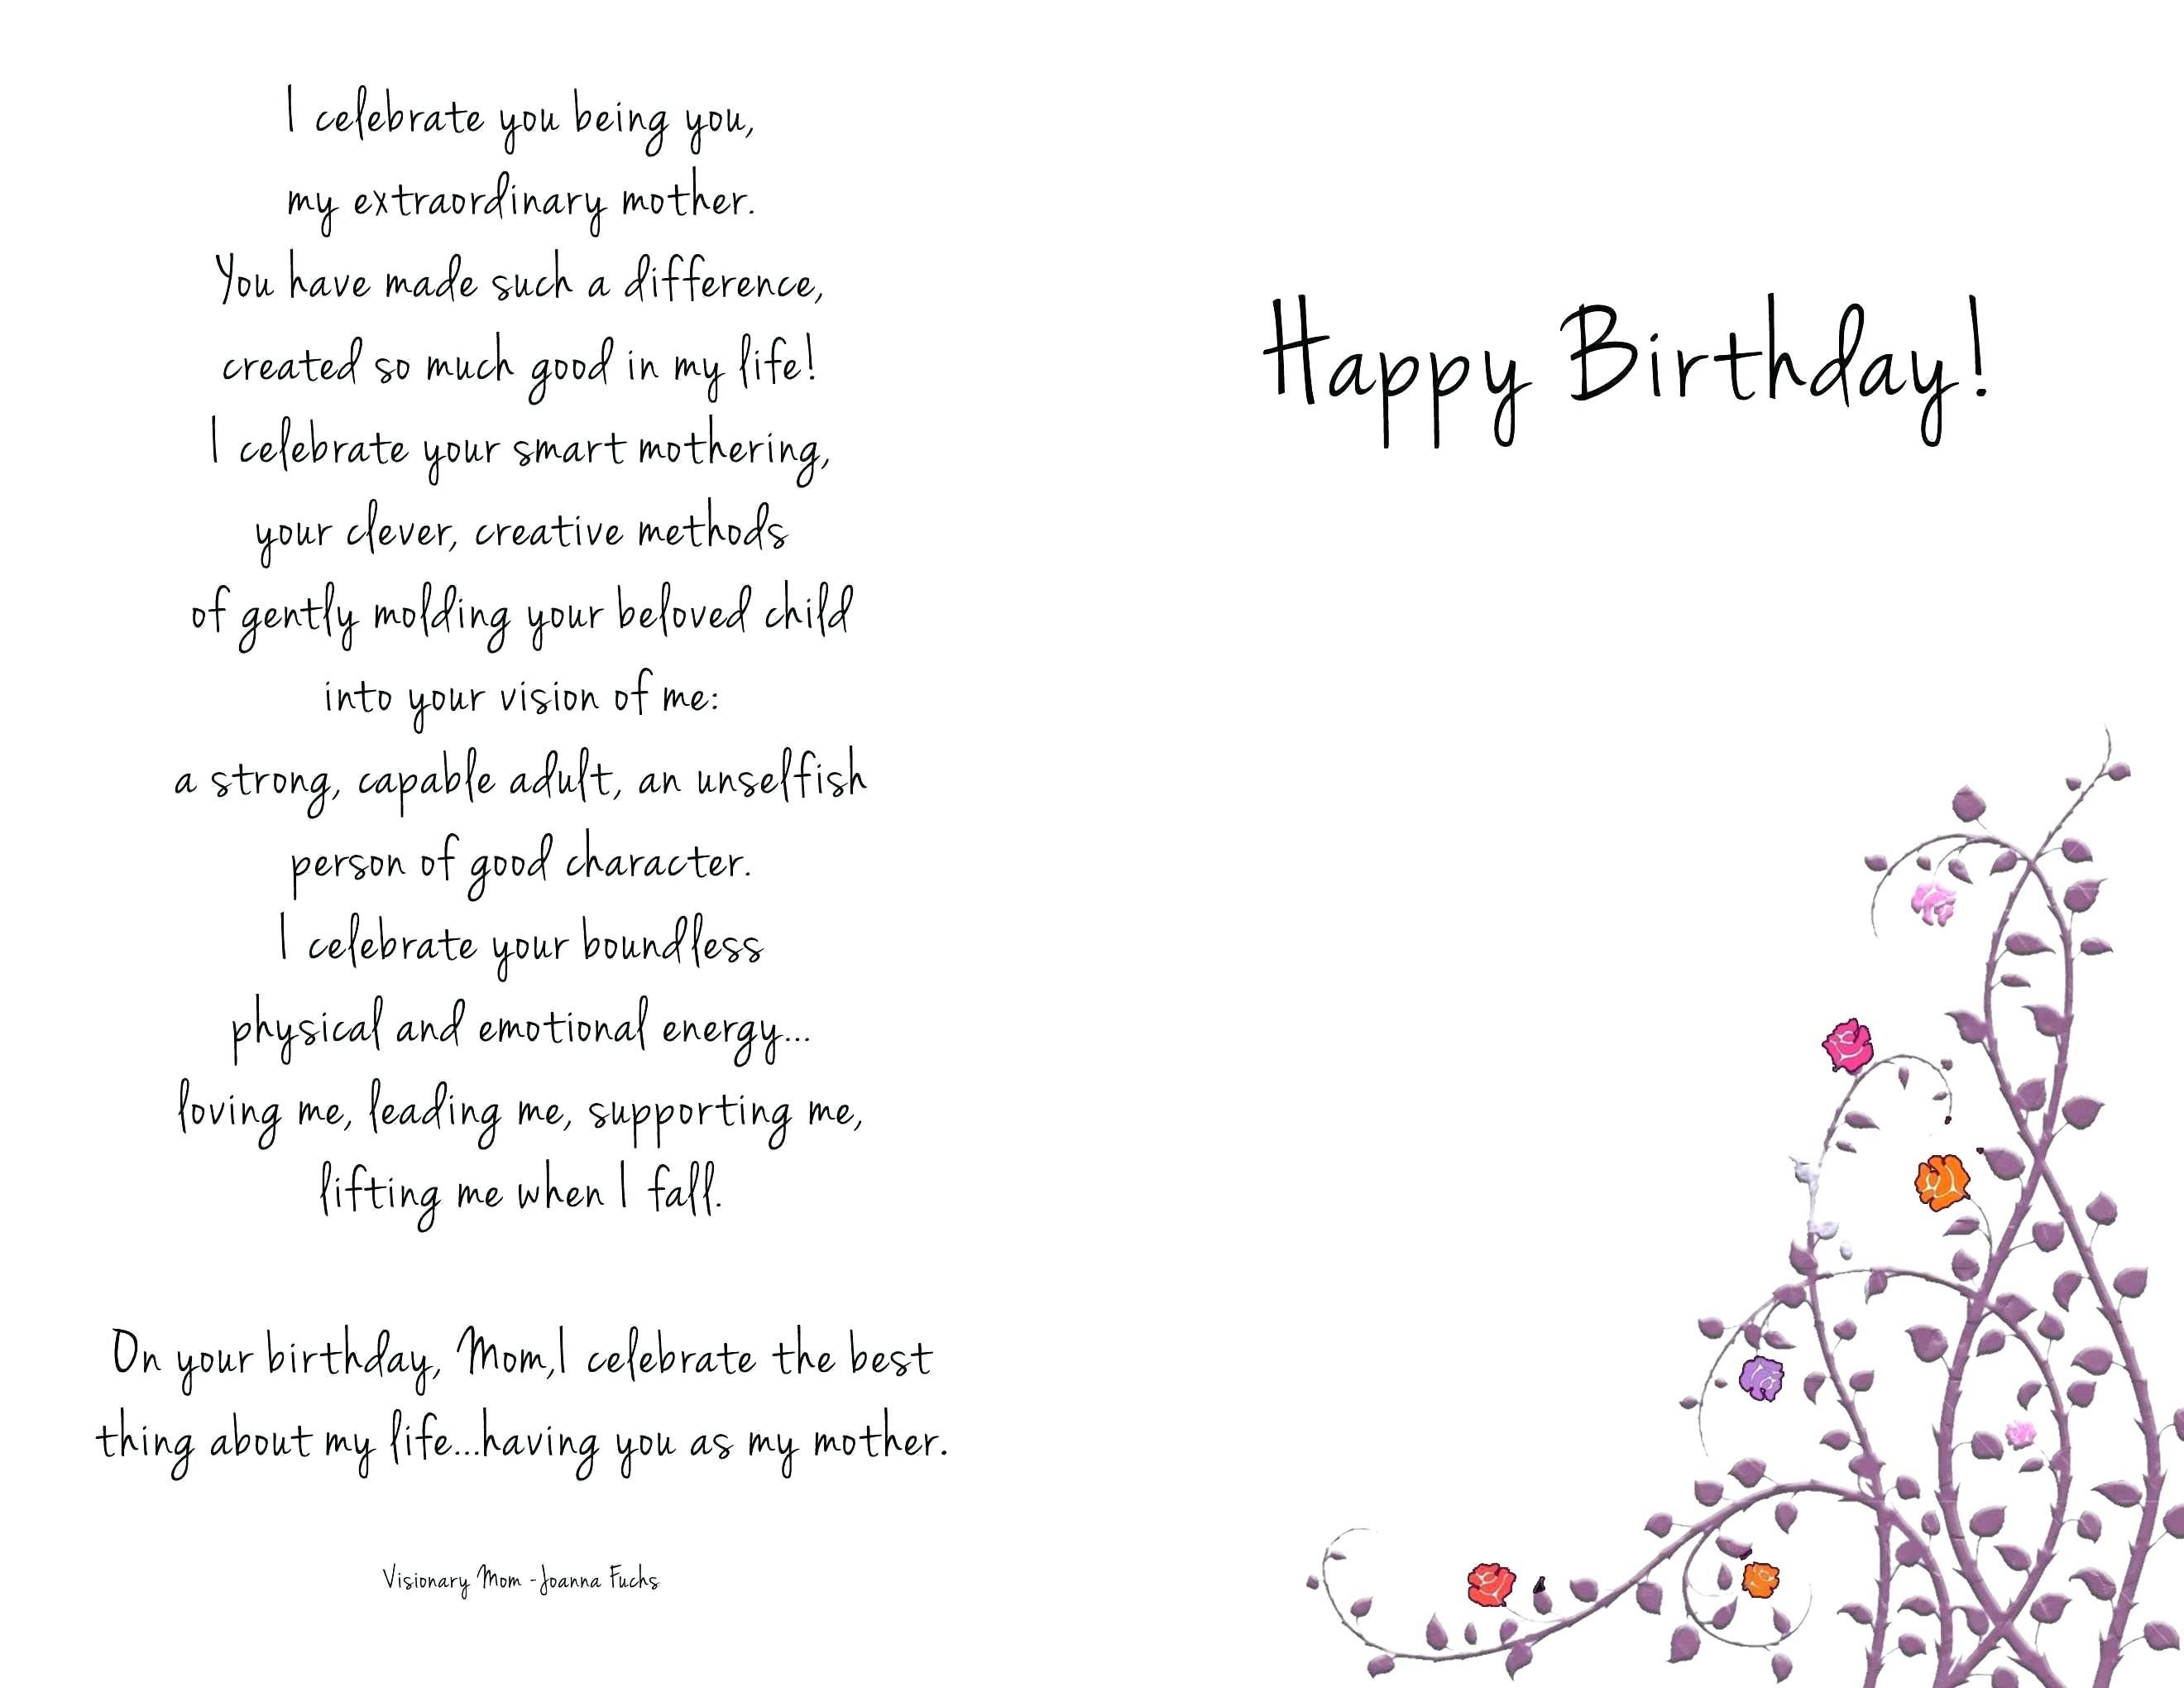 Happy Birthday Mom Coloring Cards Navajosheet Co Within Mom Birthday Card Template Cume Birthday Cards For Mother Birthday Cards For Mom Happy Birthday Mom